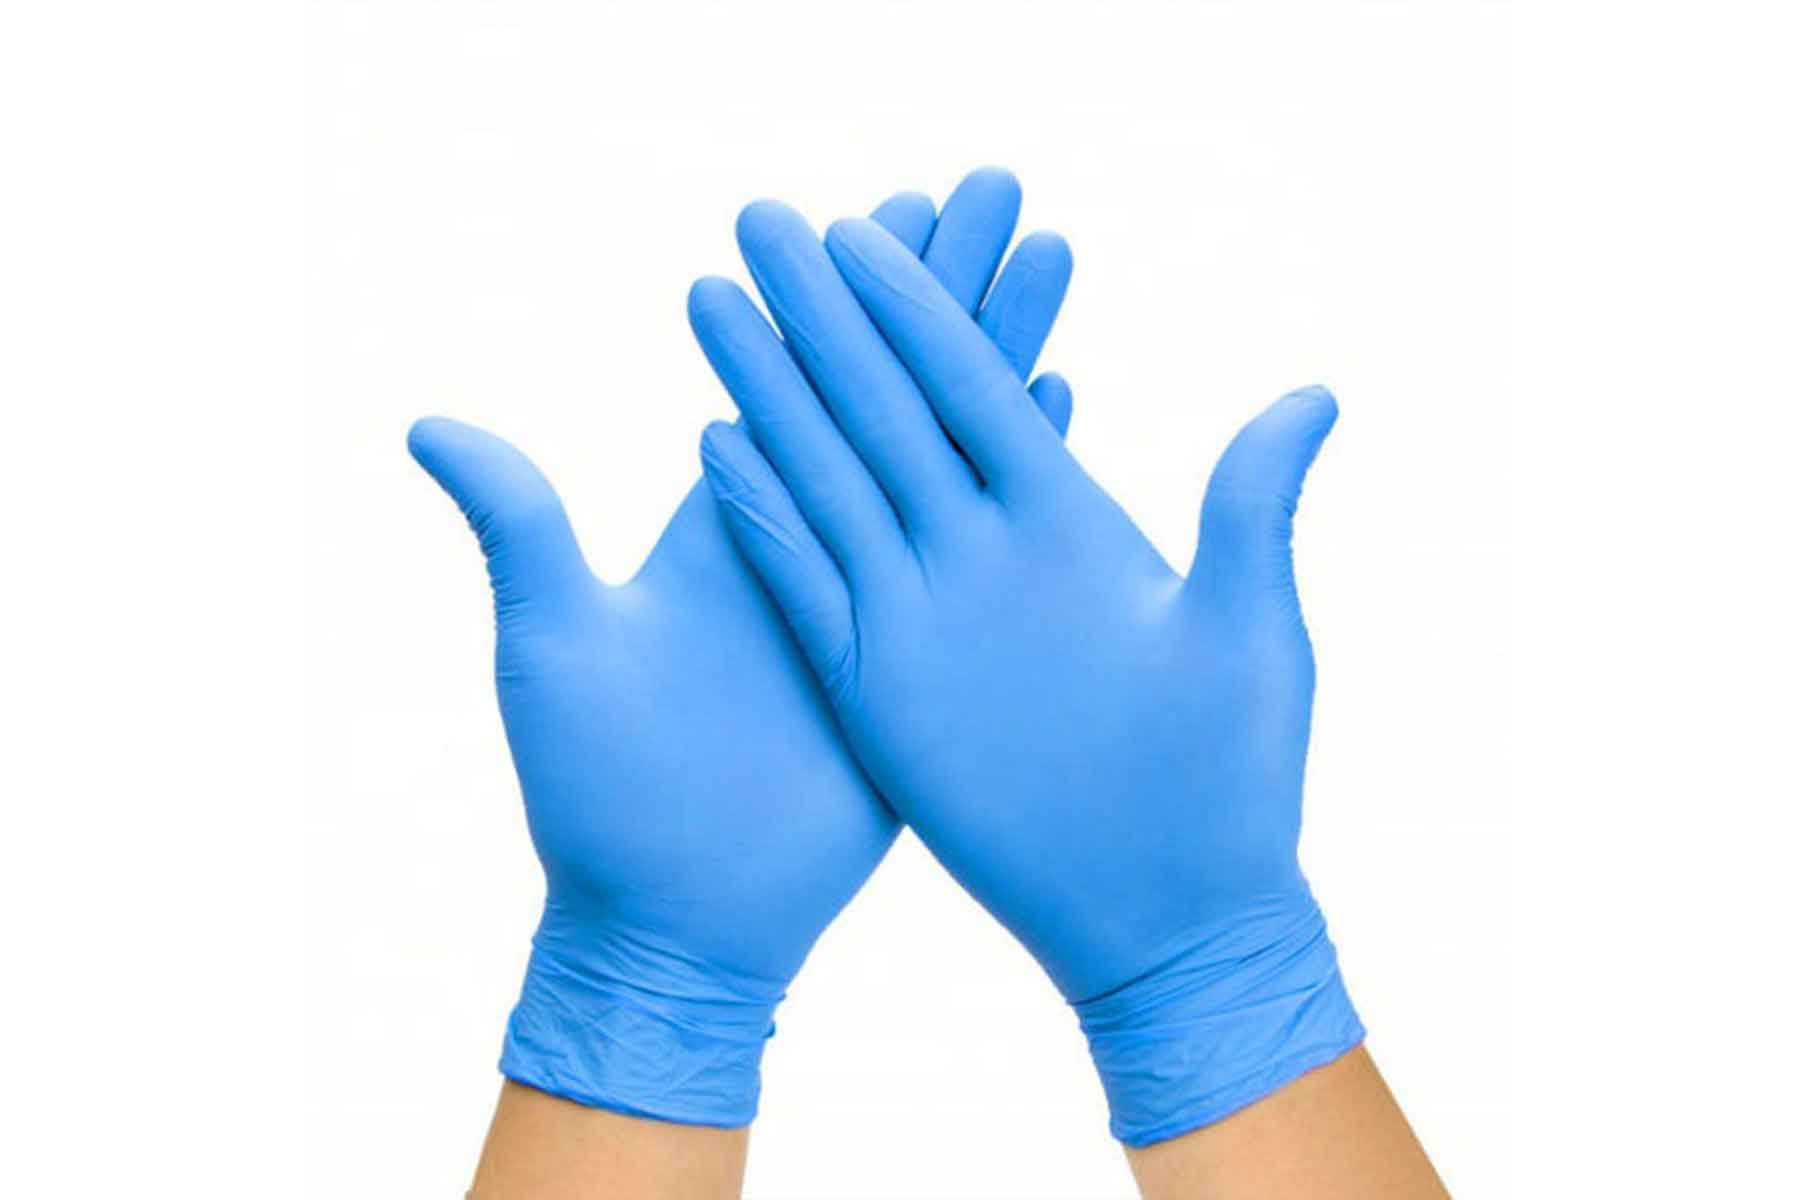 1676 Beijing Reagent Medical Nitrile Gloves | PPE Advantate powered by dS Product Hunters